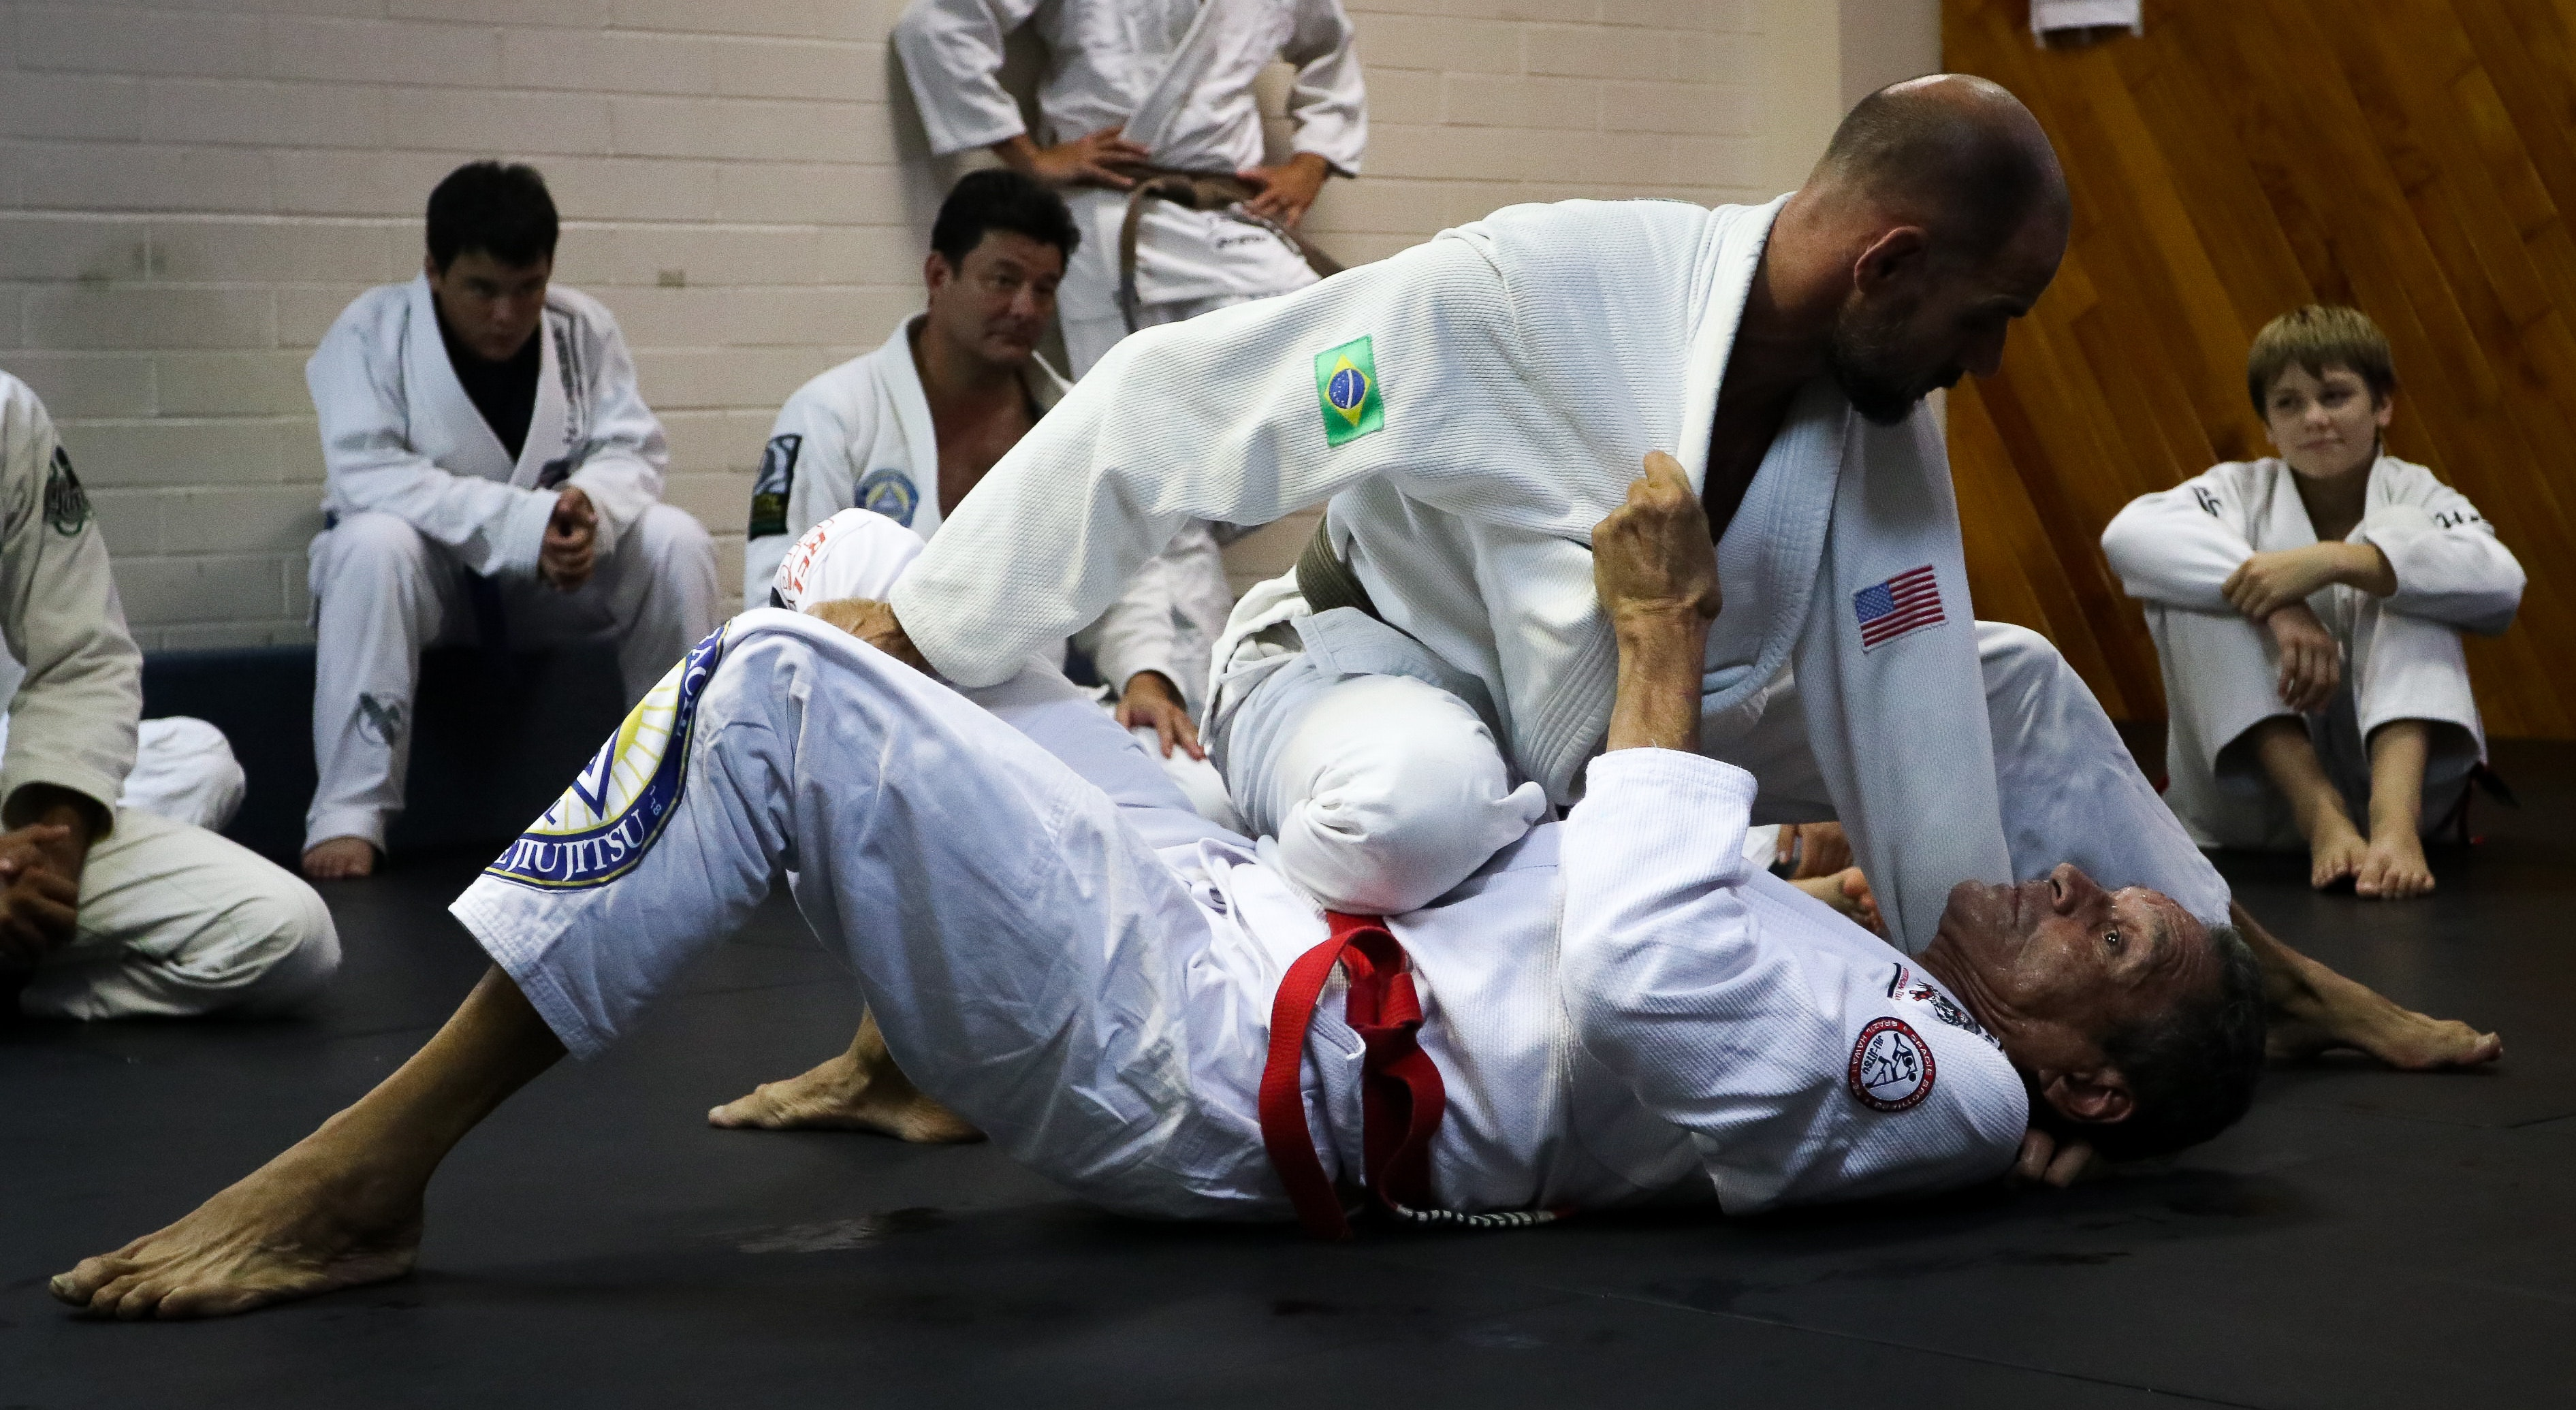 where to download bjj instructionals